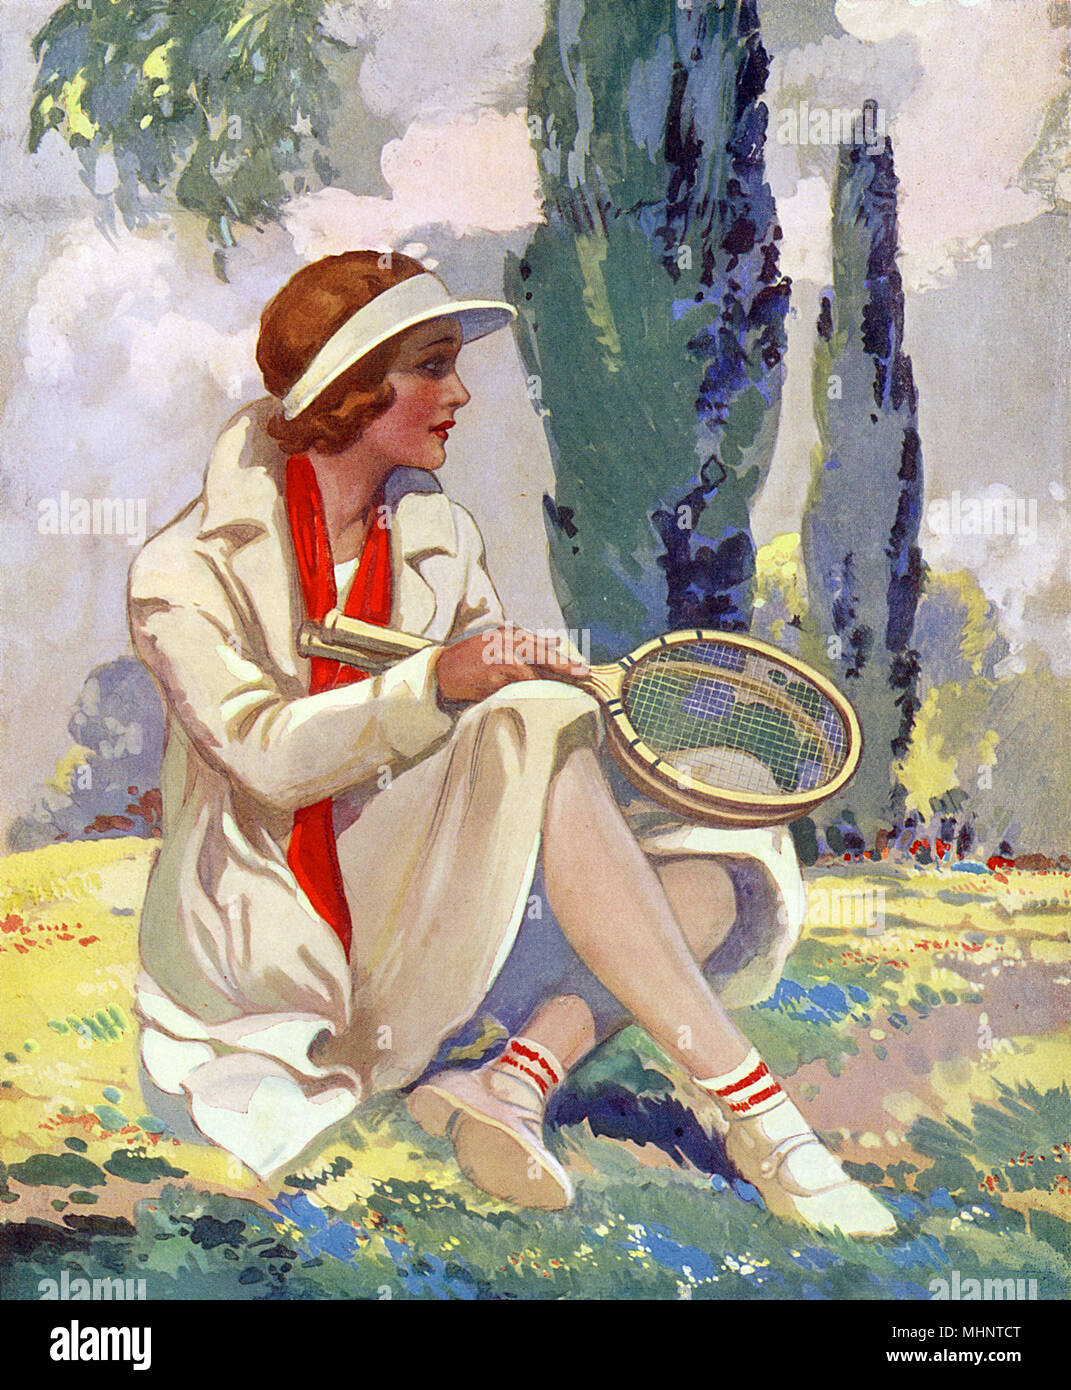 Lady Tennis Player having finished a game     Date: circa 1935 - Stock Image